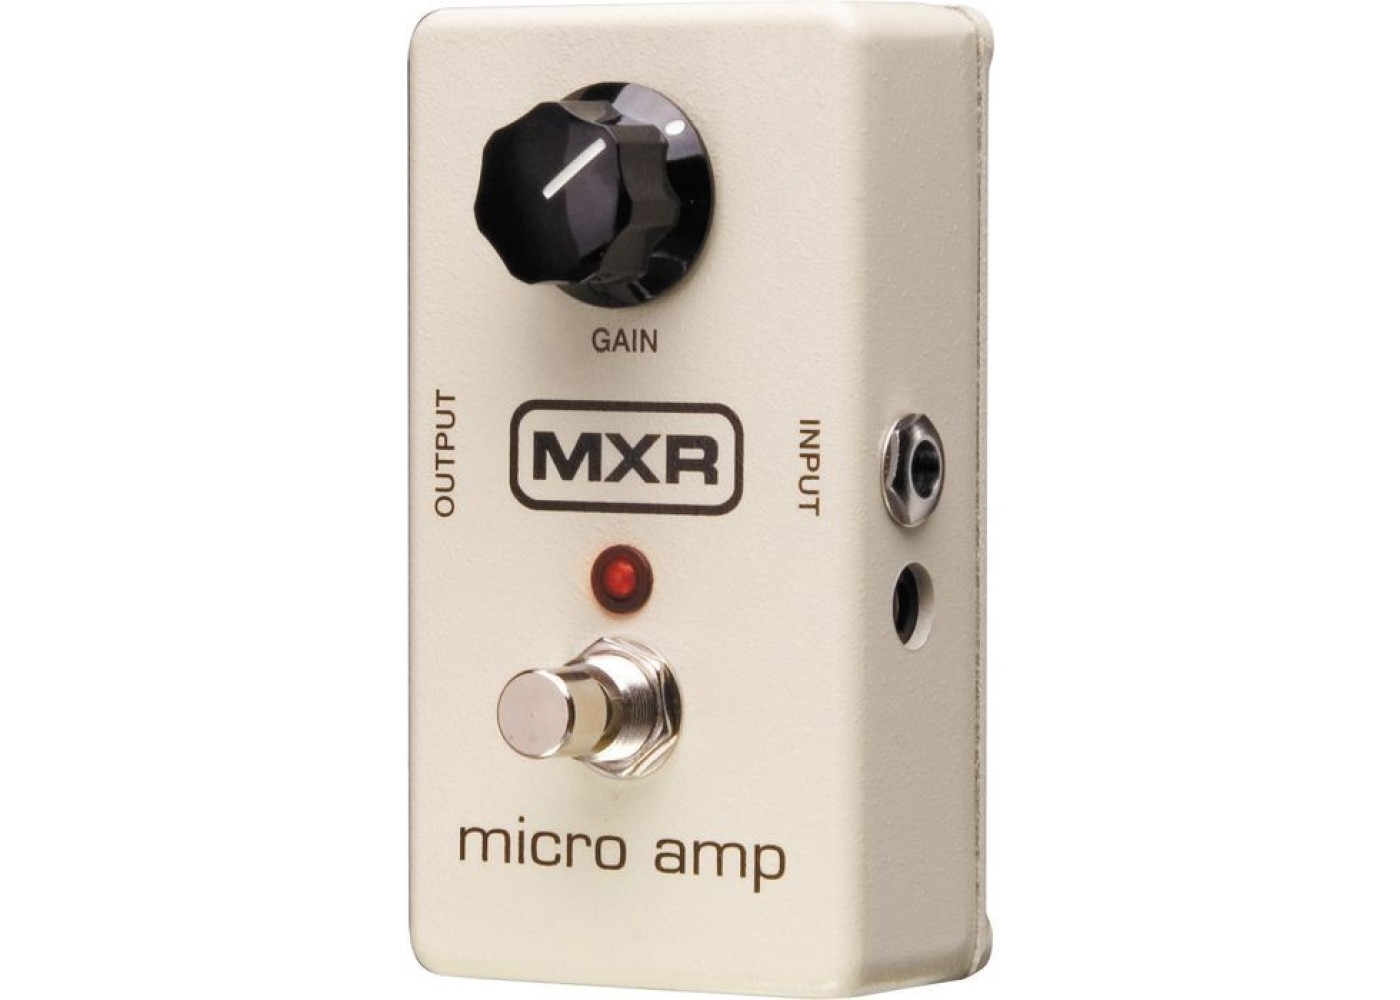 mxr m 133 micro amp electric guitar effects pedal. Black Bedroom Furniture Sets. Home Design Ideas